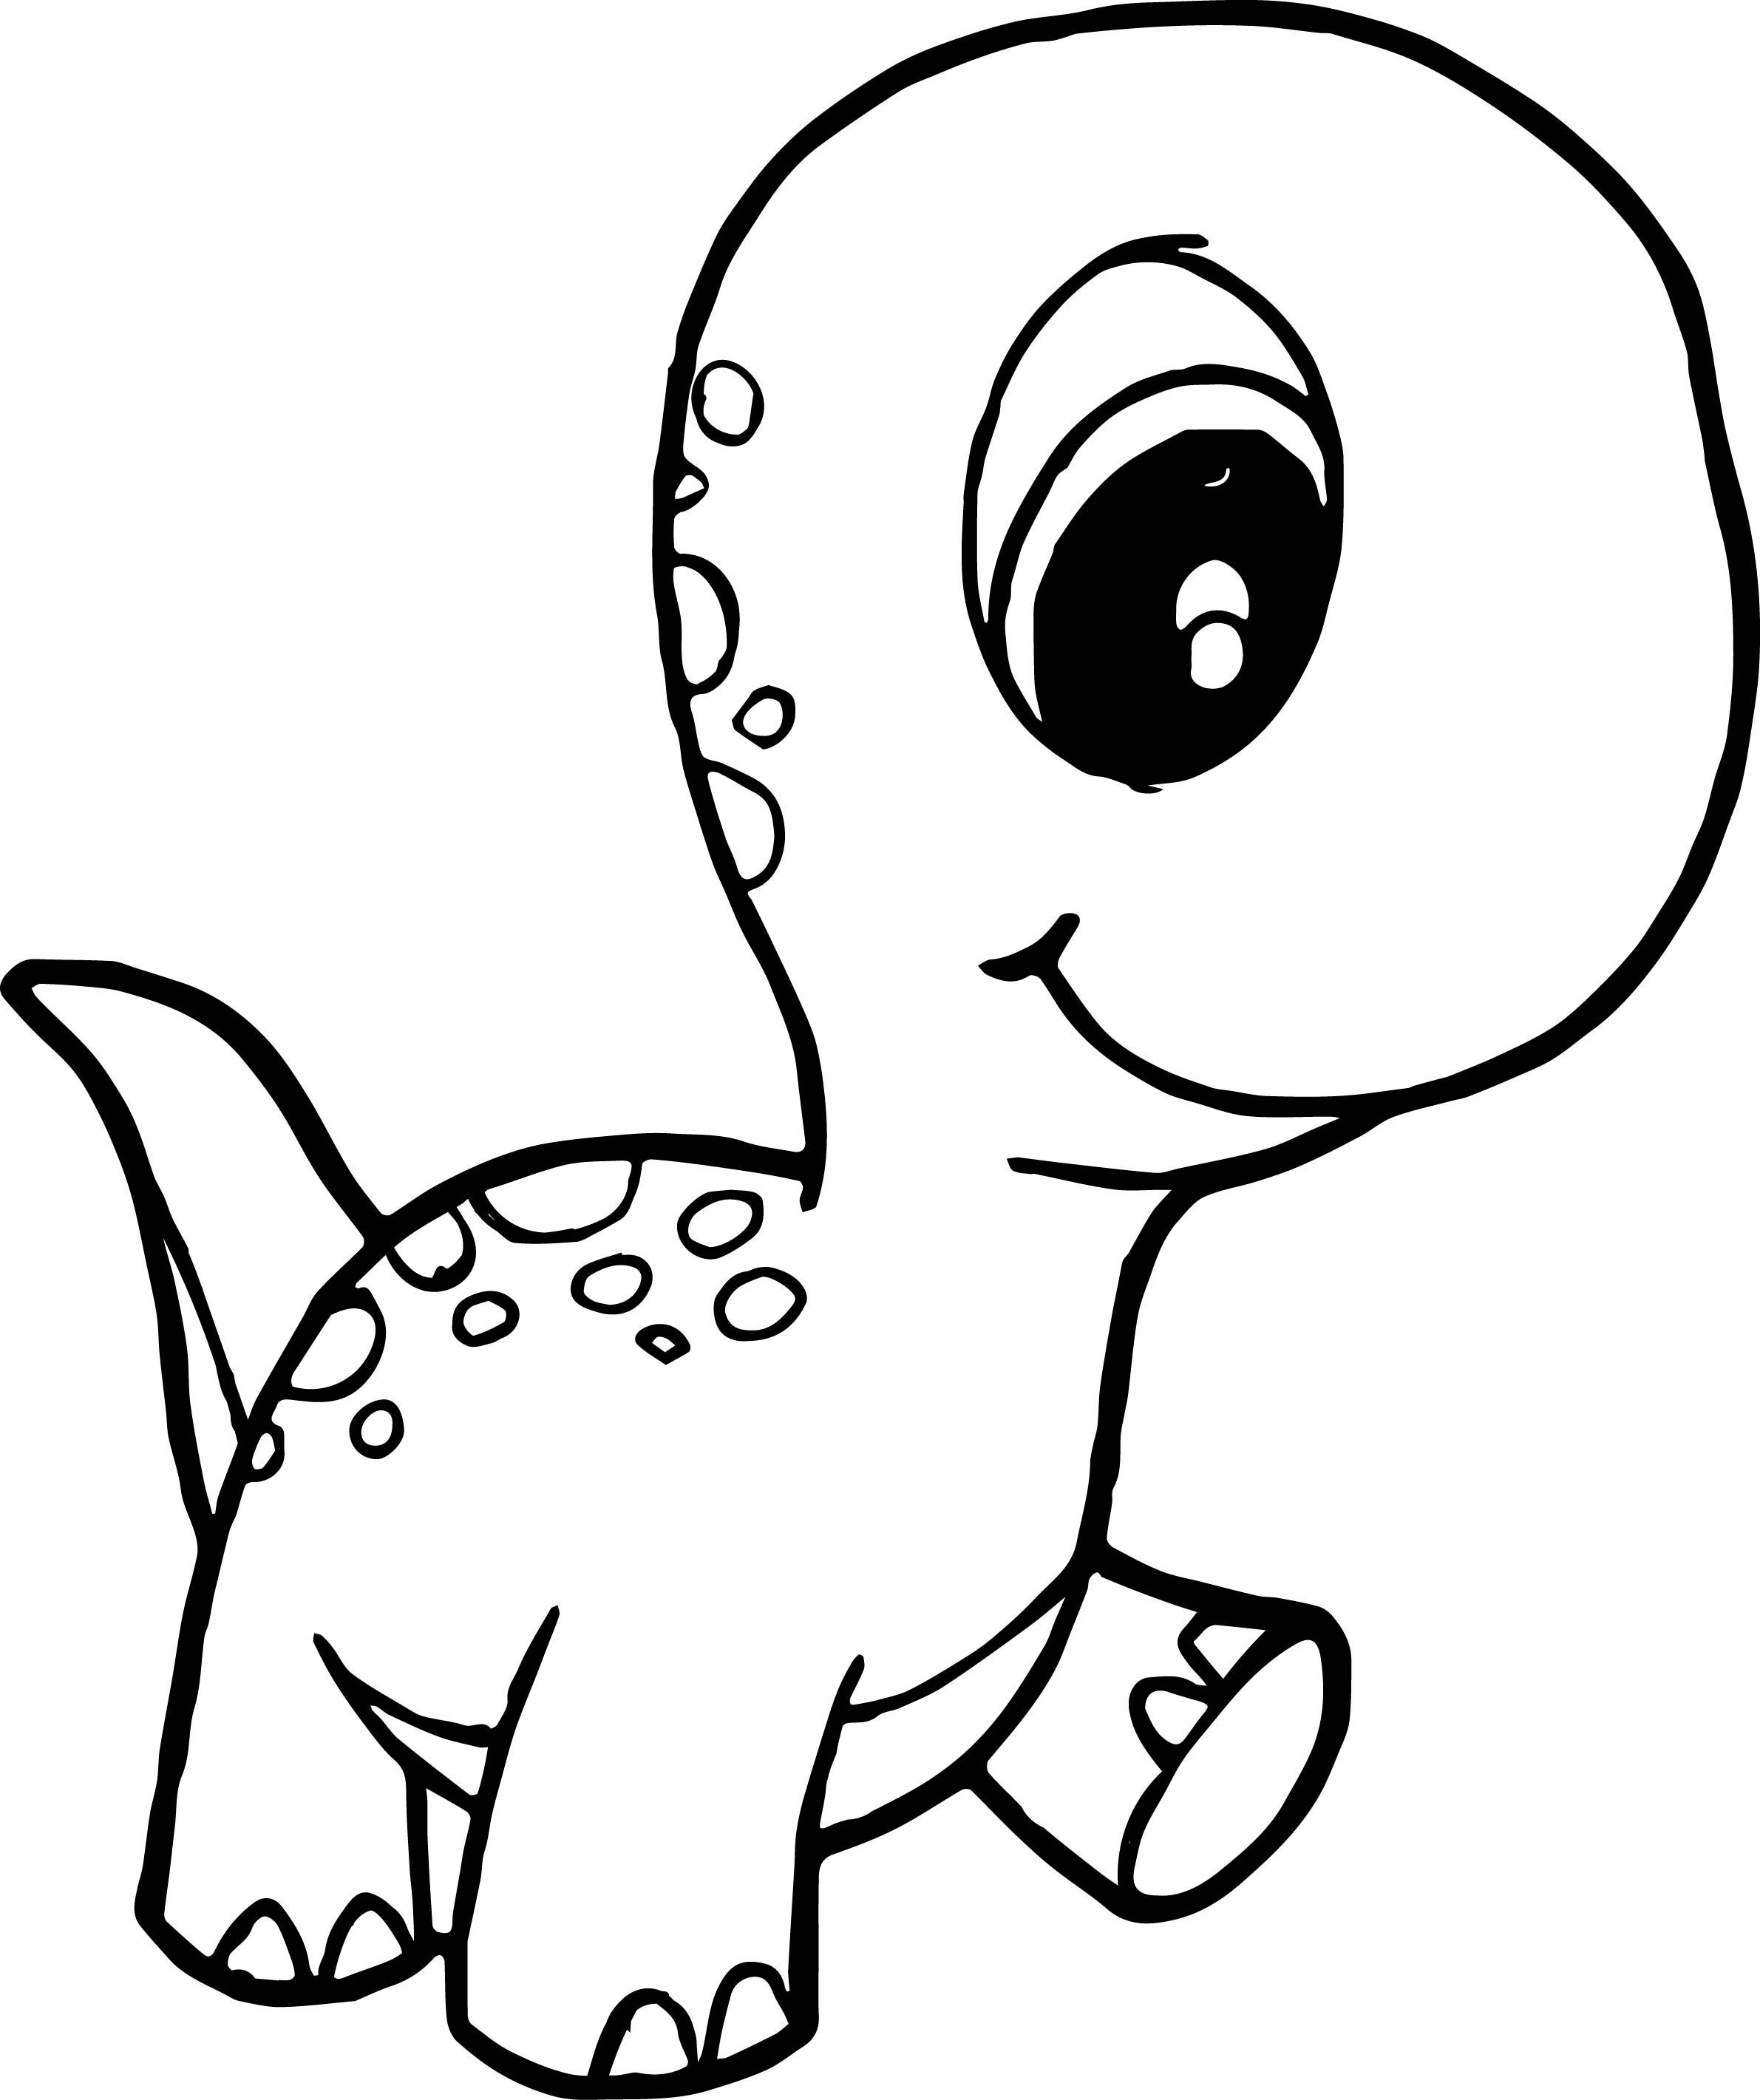 Awesome Dinosaur Cute Baby Walking Coloring Page Cute Coloring Pages Dinosaur Coloring Cartoon Coloring Pages